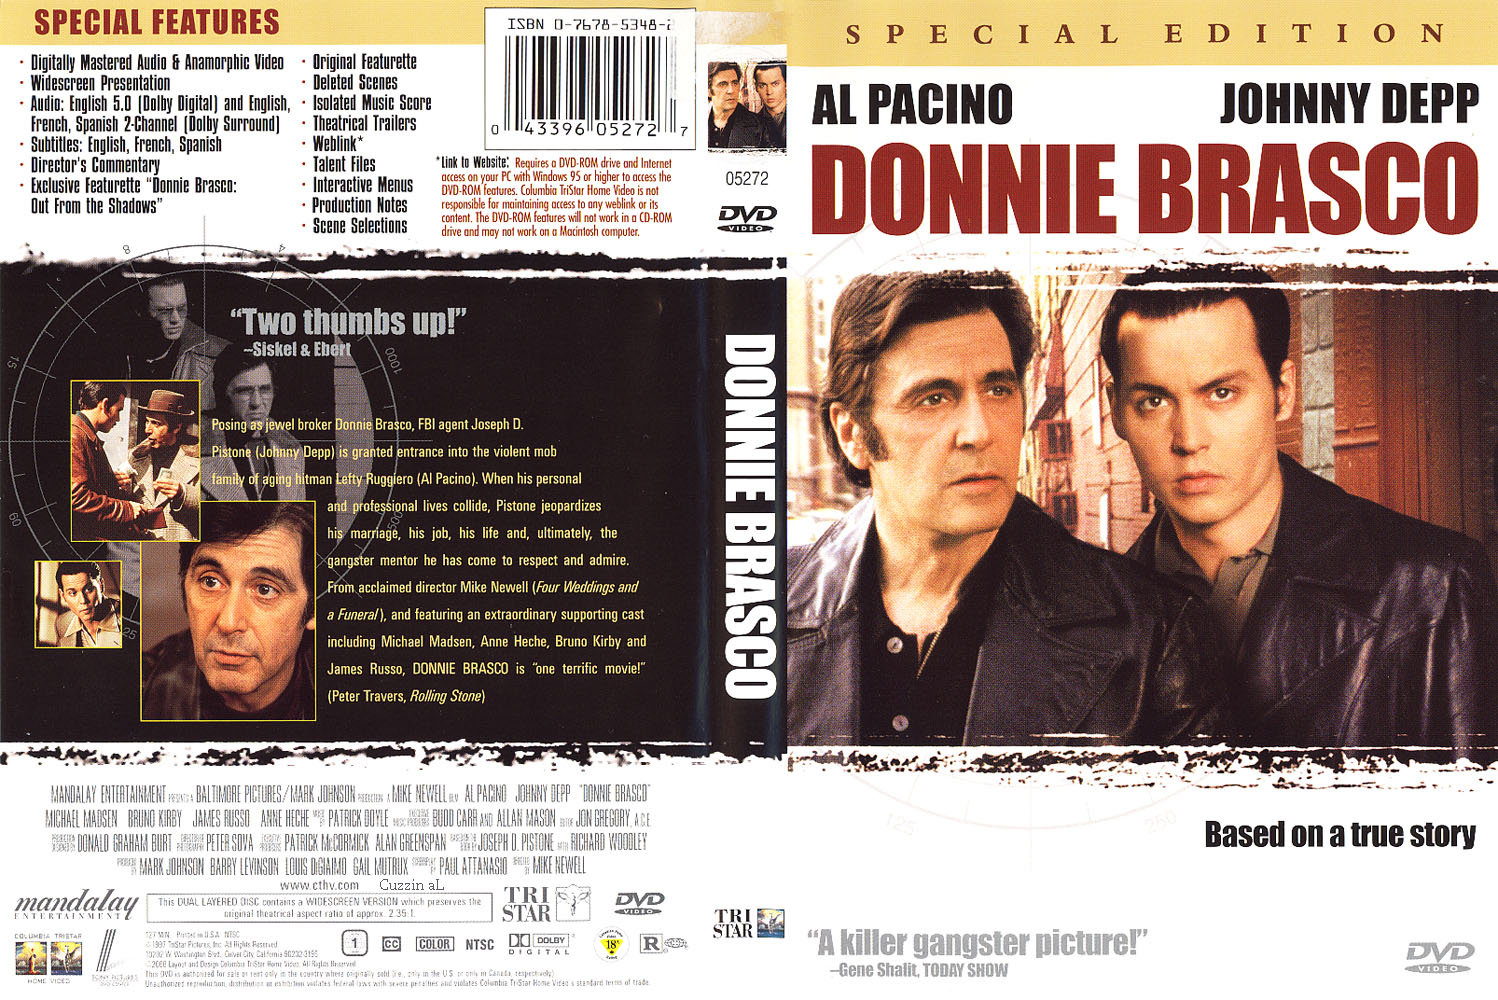 http://4.bp.blogspot.com/-Y3A9bG5WOoU/T38rTS1Gp2I/AAAAAAAABIE/dPOZGn0E6Wg/s1600/Donnie_Brasco-%5Bcdcovers_cc%5D-front.jpg